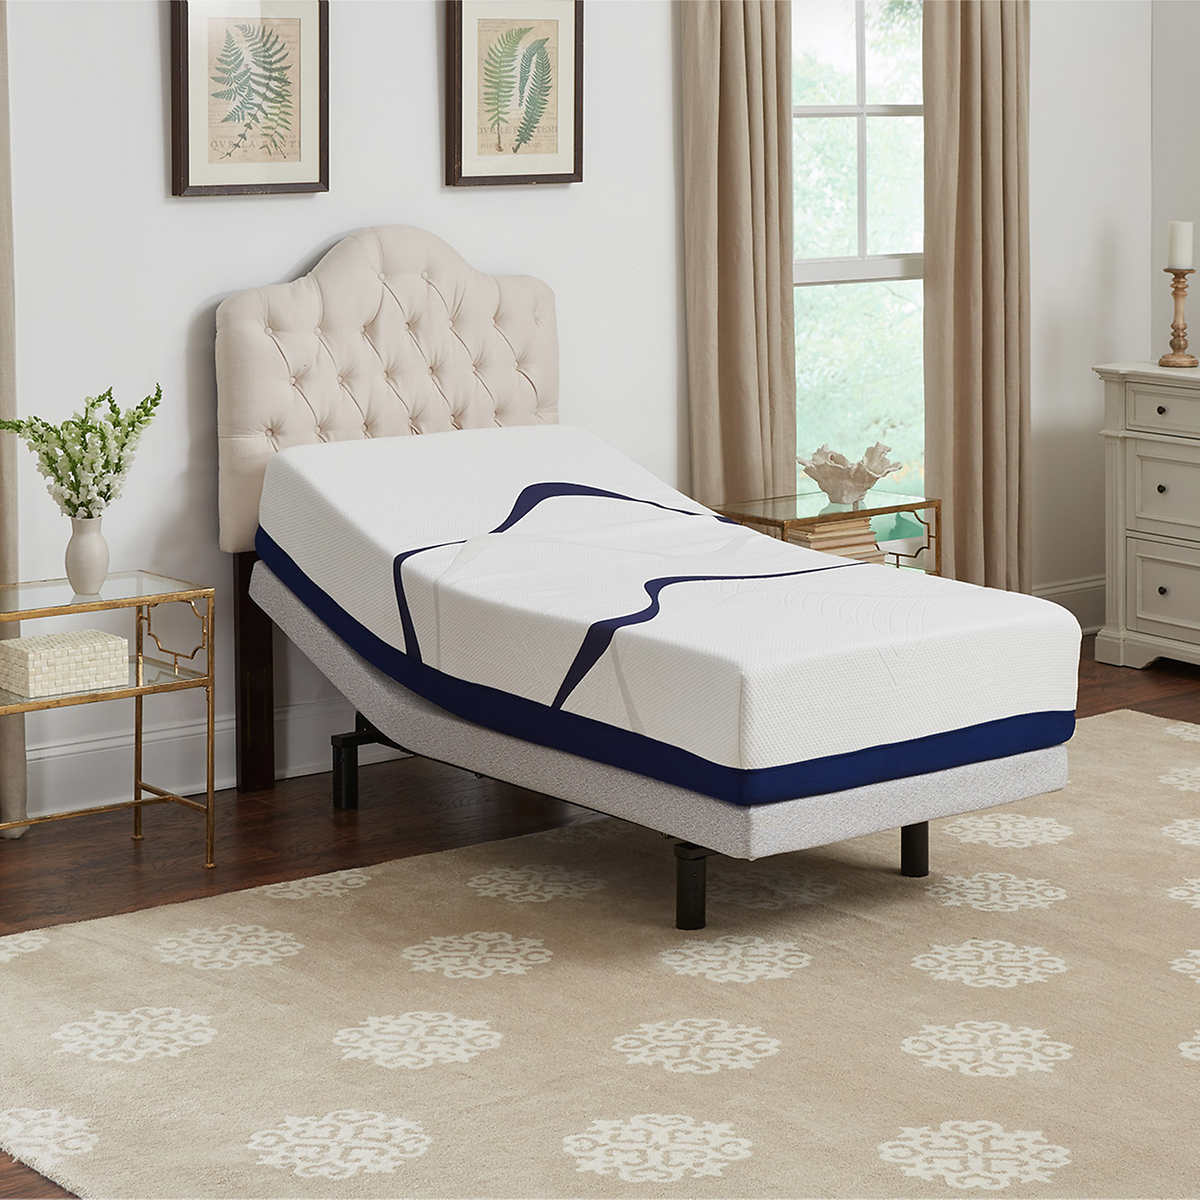 Twin size sleep number bed prices - Leggett Platt Brookwood 12 Twin Xl Gel Memory Foam Mattress With Adjustable Base